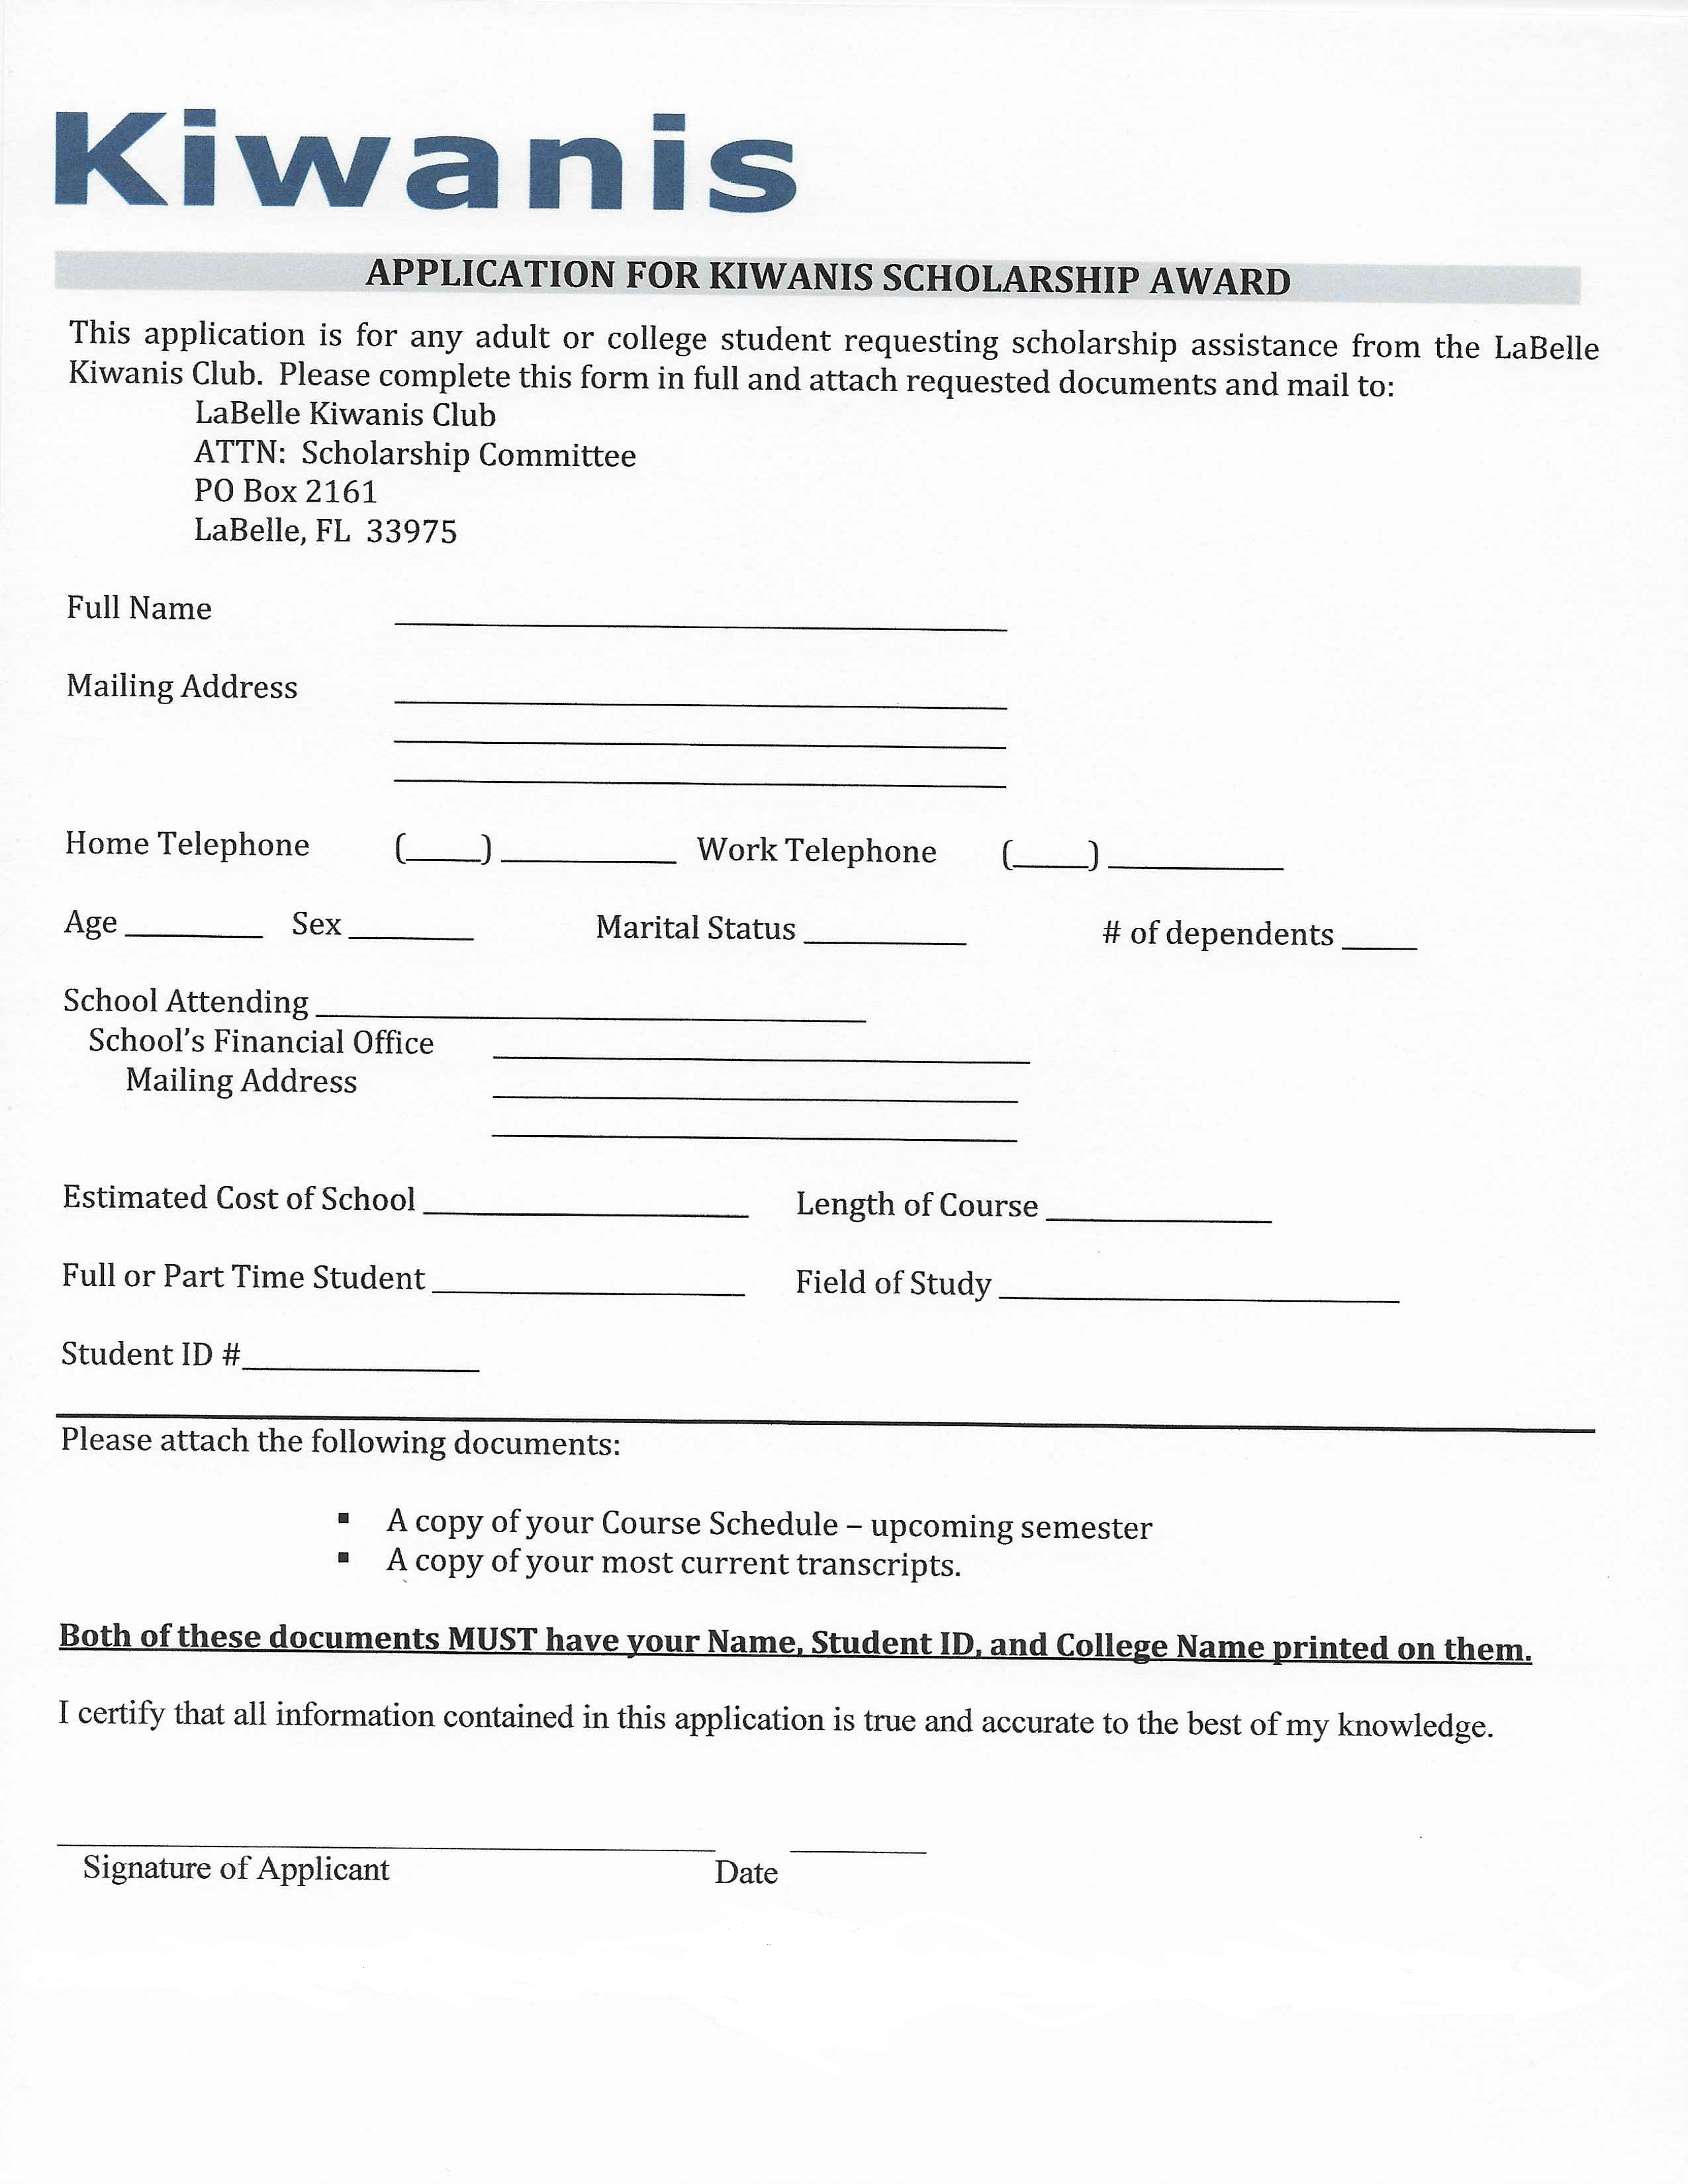 picture regarding Printable Scholarship Applications identify Kiwanis Club of LaBelle